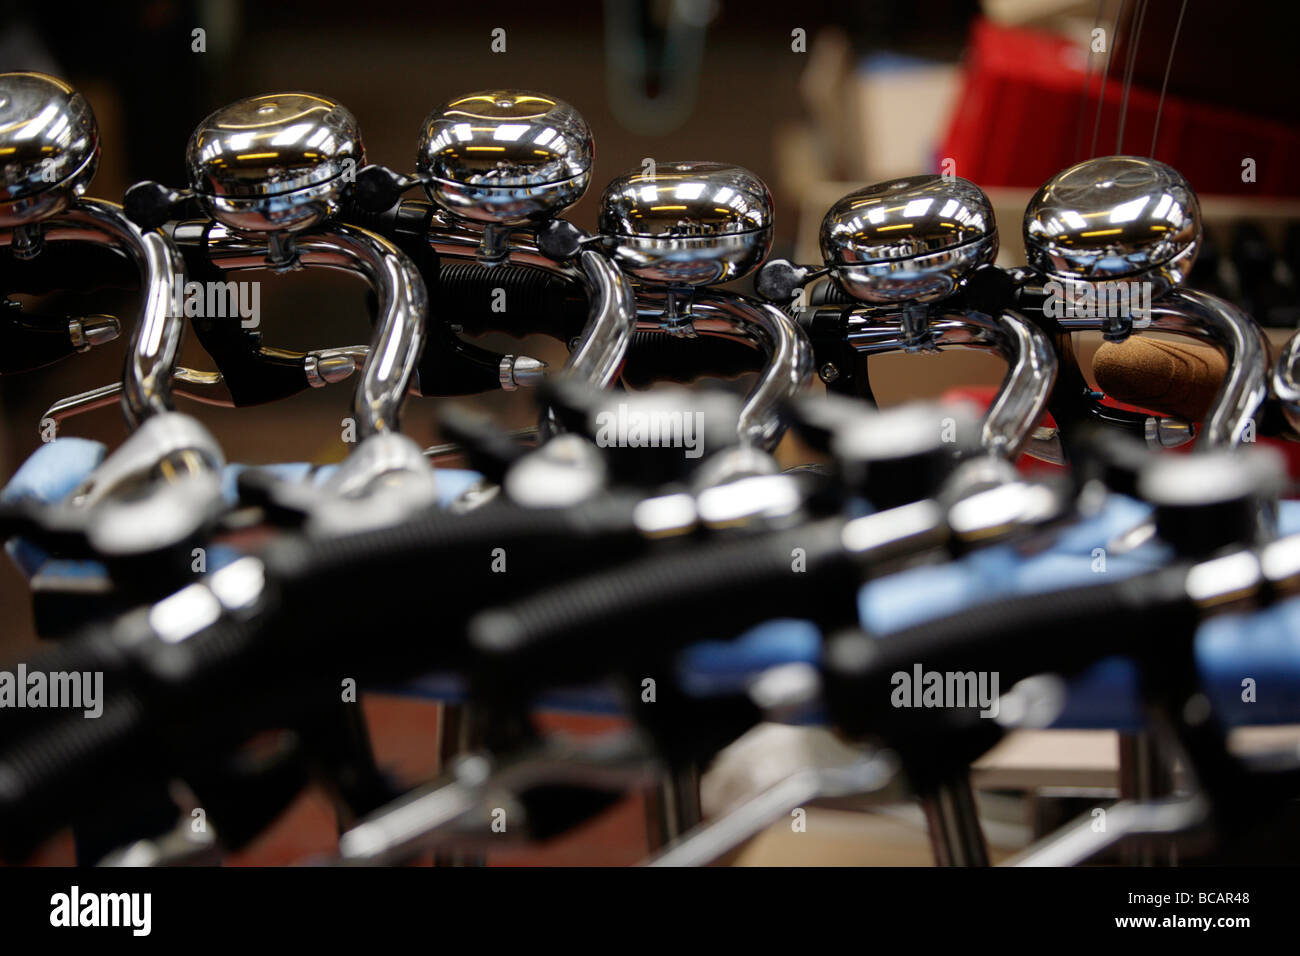 Handle bars with bicycle bells waiting to be attached to bicycles at Pashley Cycles in Stratford-Upon-Avon, Warwickshire, - Stock Image